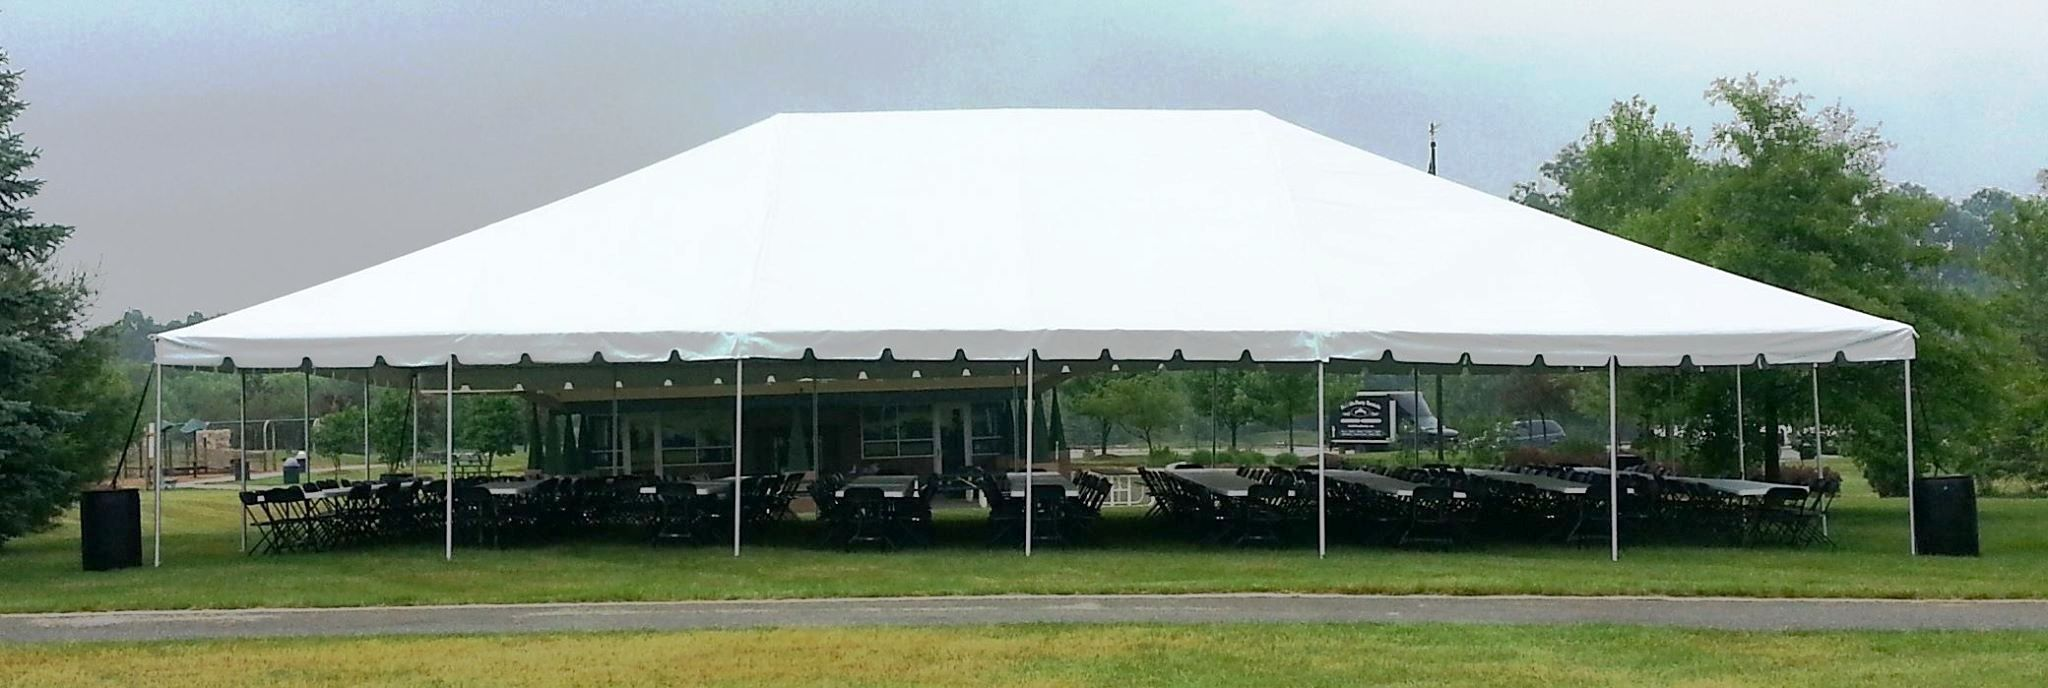 40X60 Frame Tent & Destination Events 40X60 Frame Tent - Destination Events